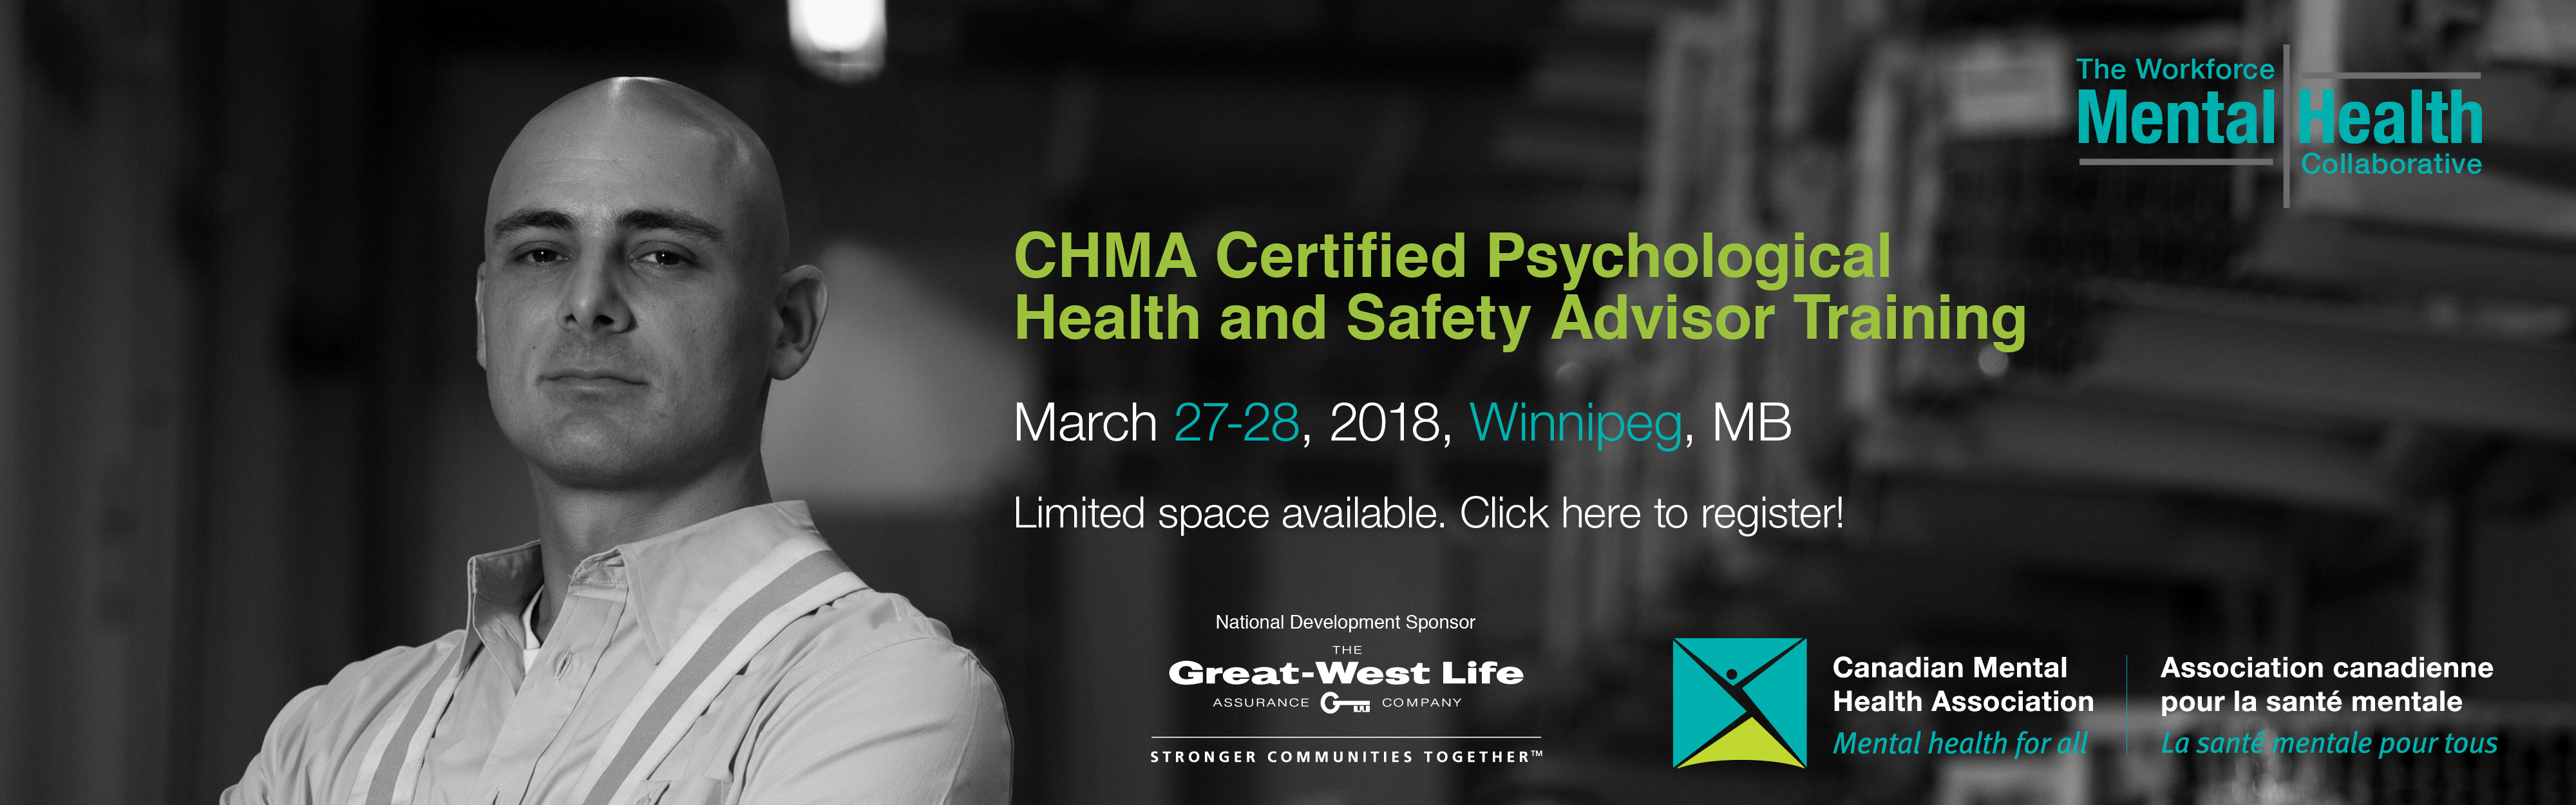 CMHA Certified Psychological Health & Safety Advisor Training – March 2018